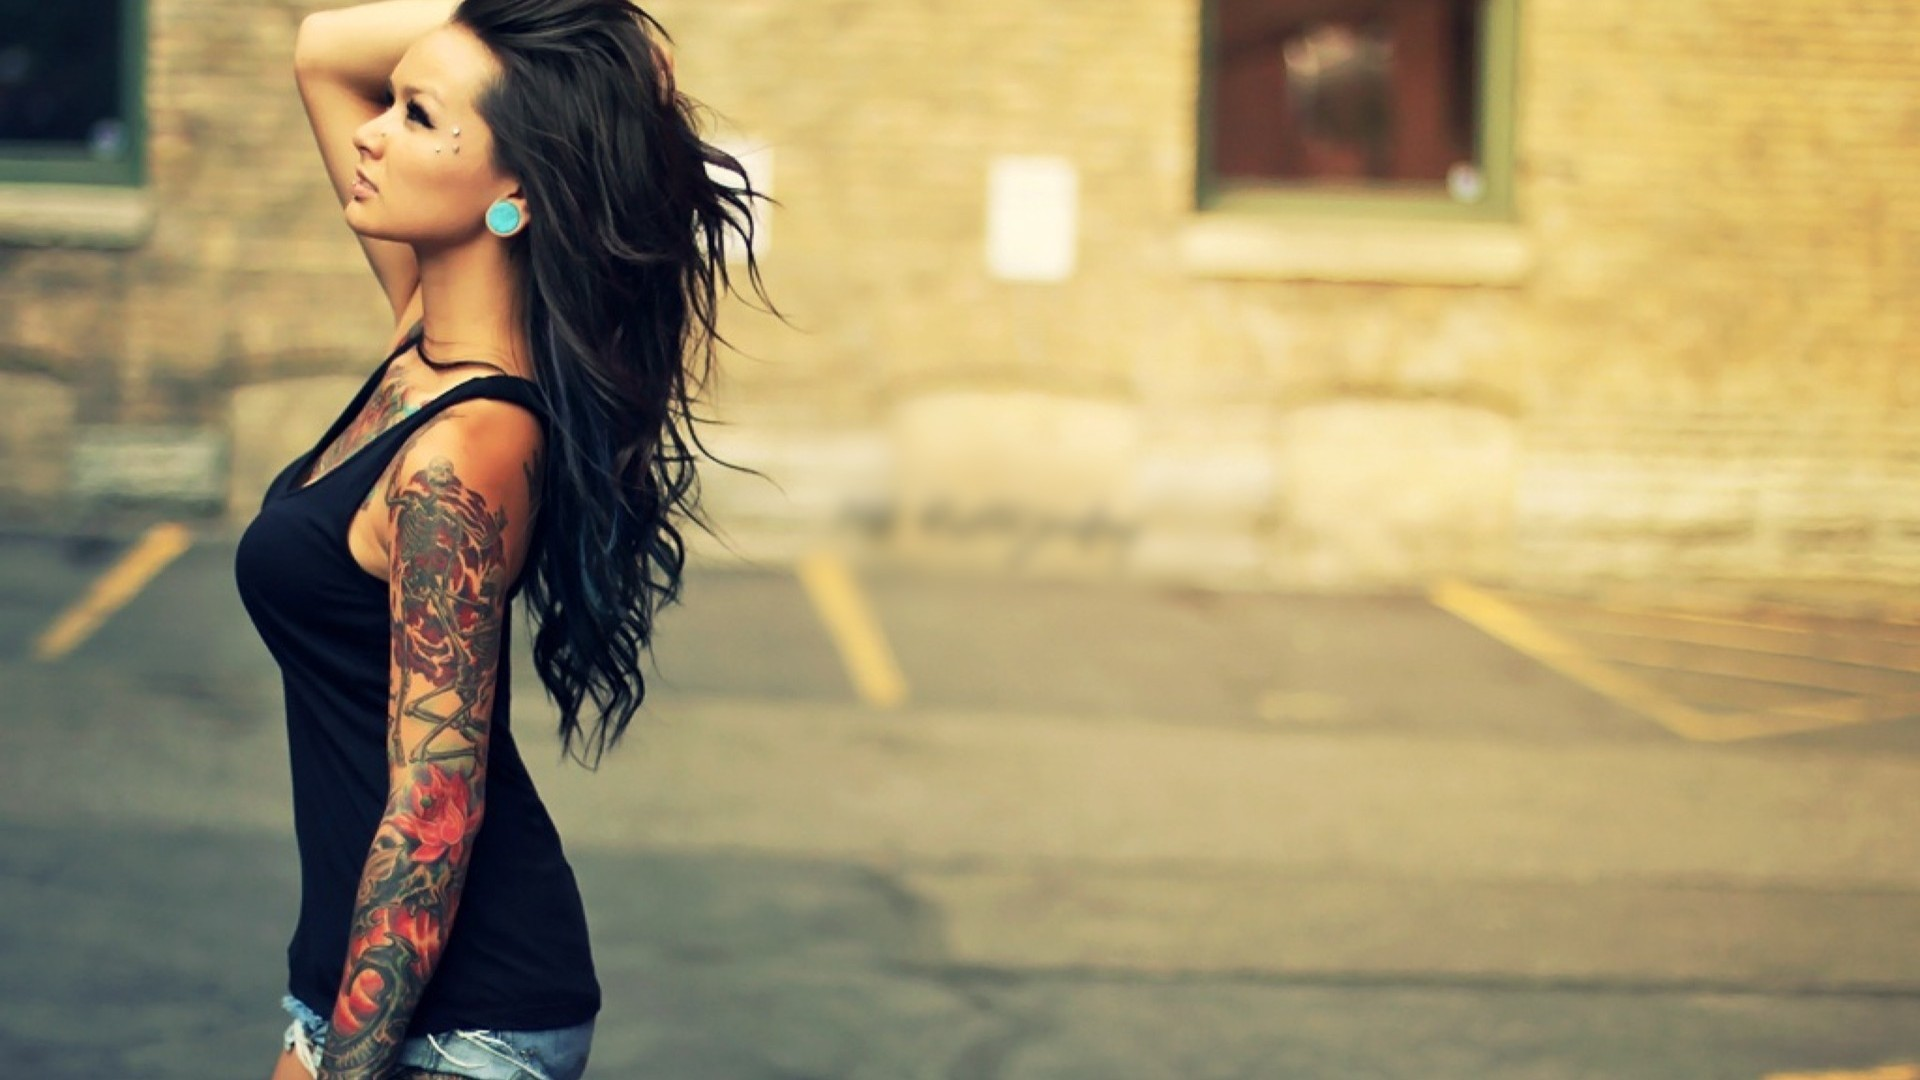 Tattoo Girl Wallpapers High Quality Download Free | HD Wallpapers |  Pinterest | Hd wallpaper, Wallpaper and Tattoo